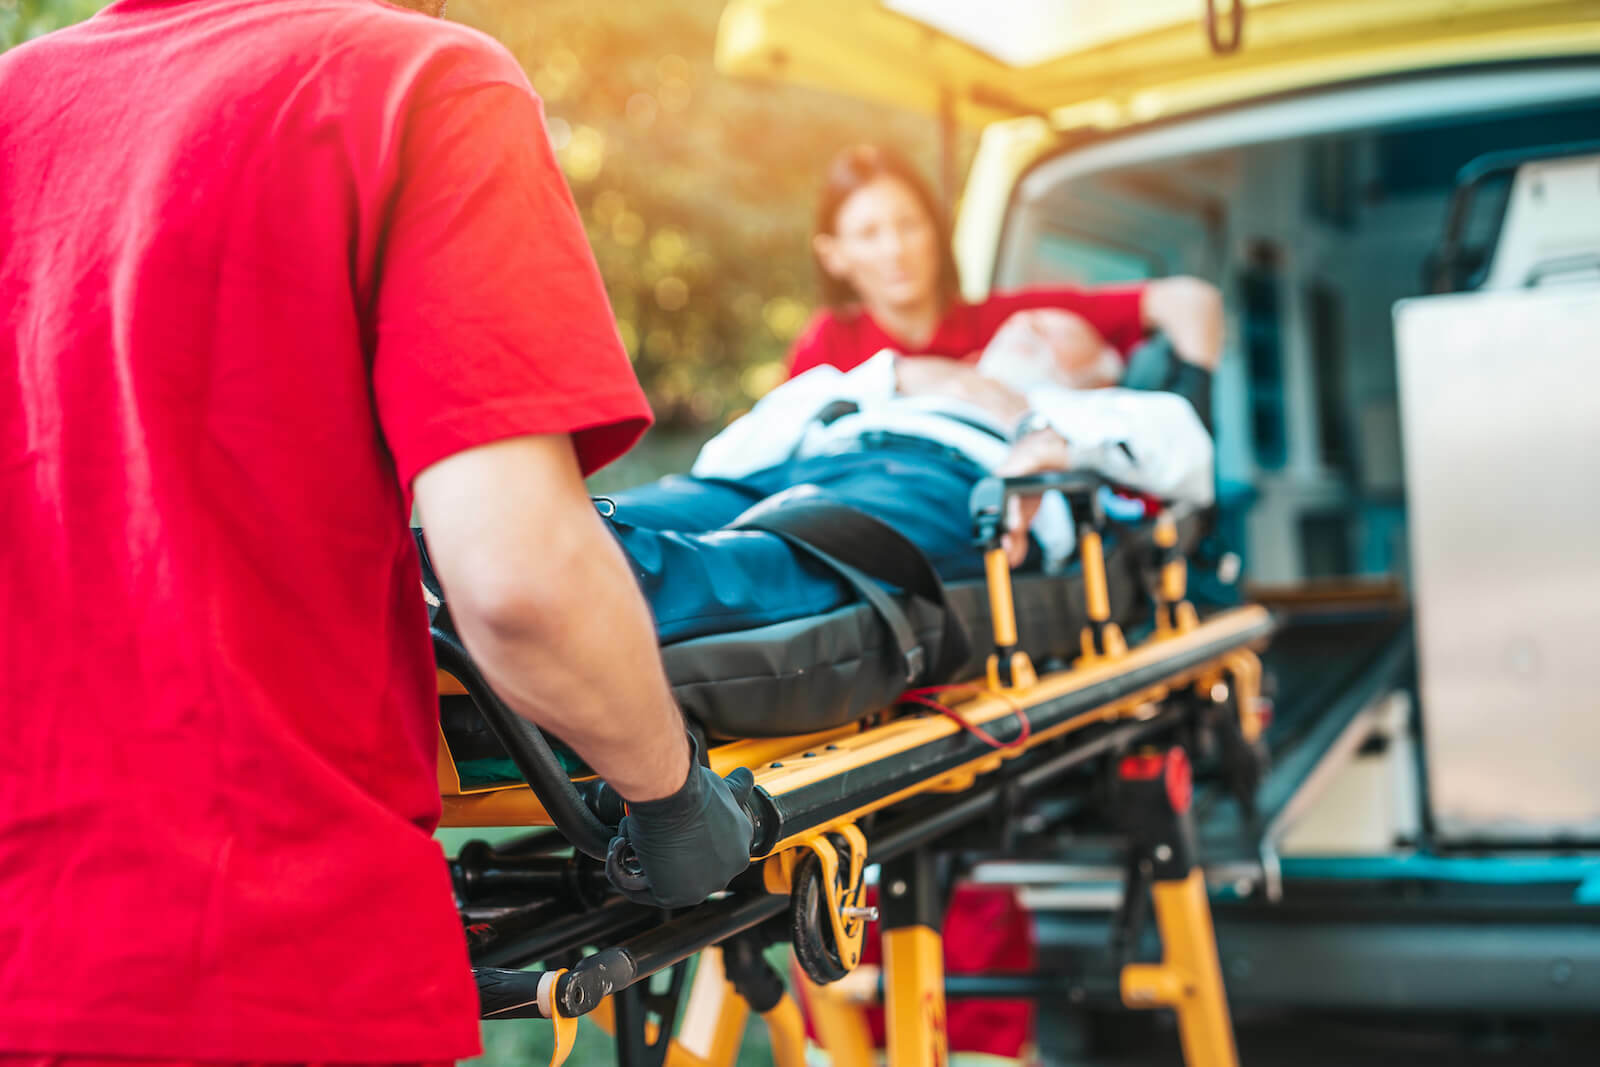 How to treat heat stroke: paramedics pushing a gurney with a patient in it